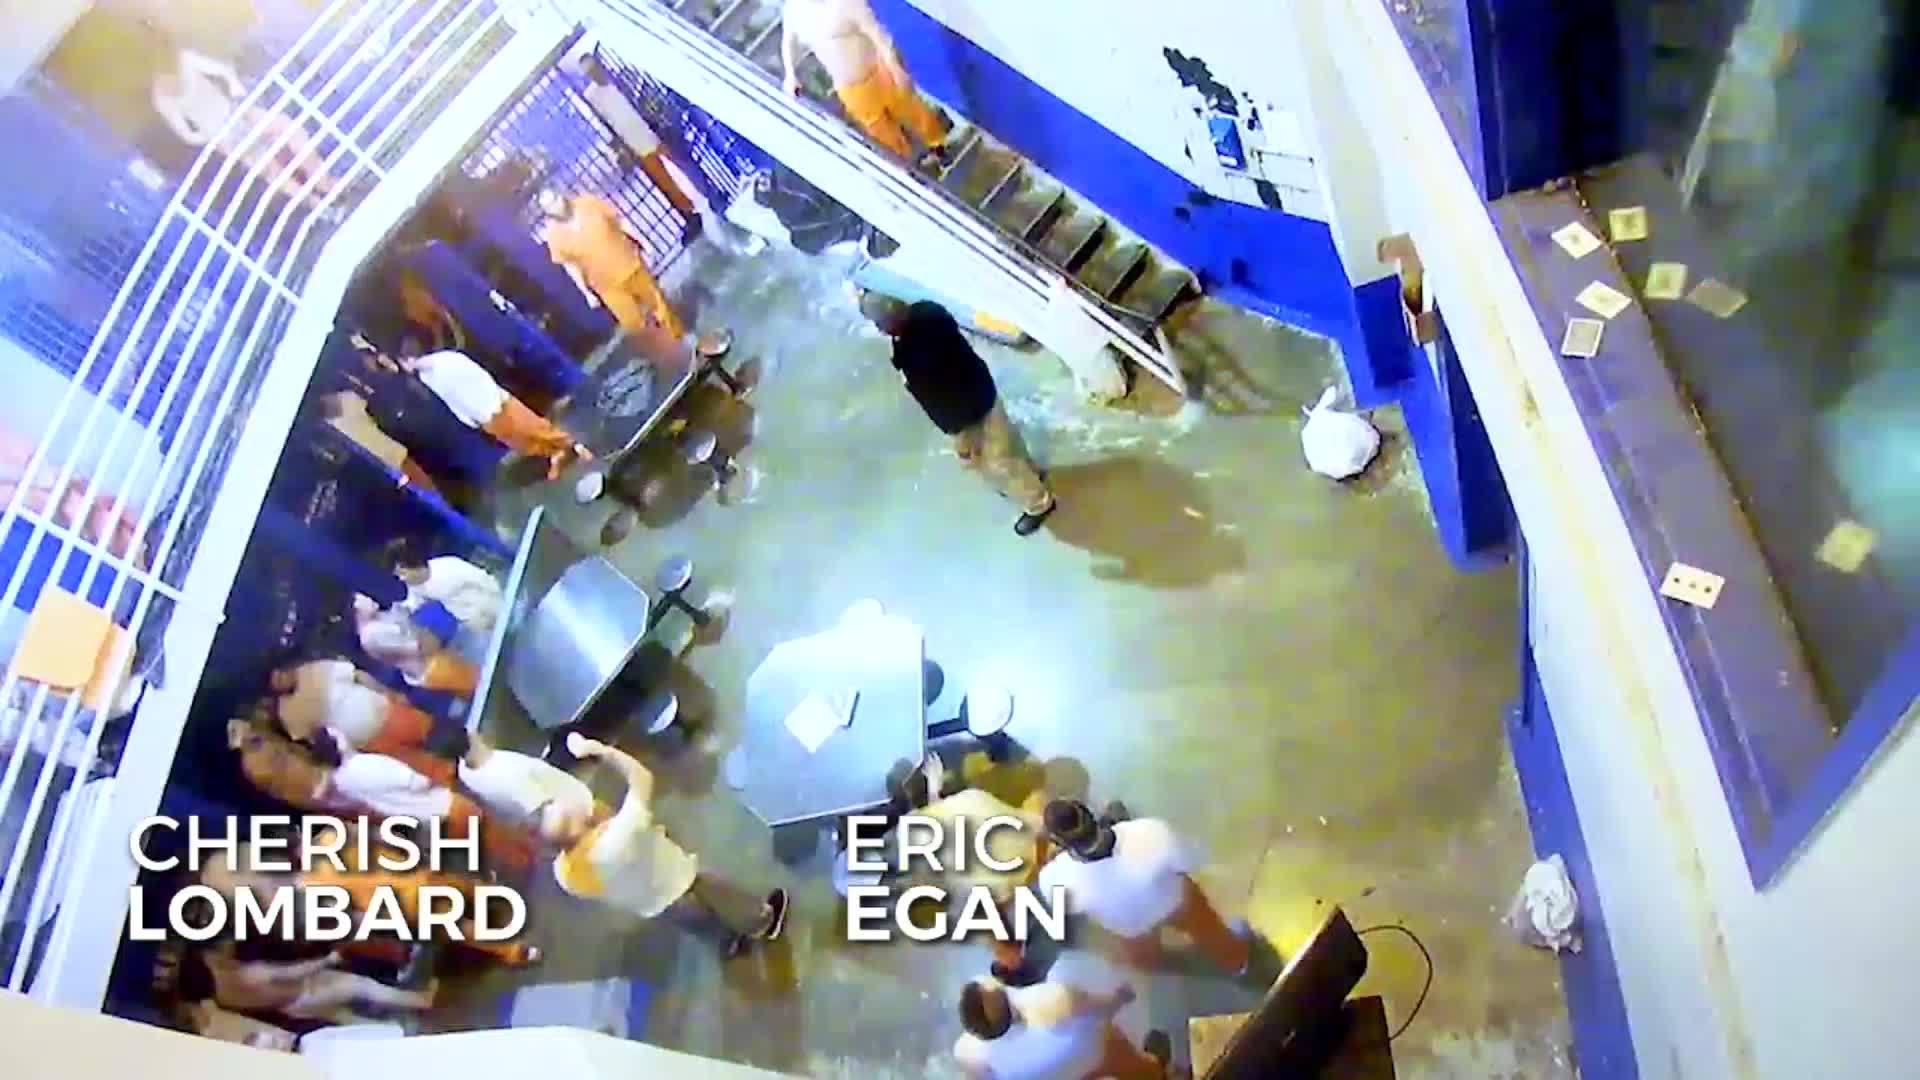 WATCH: More than 50 inmates brawl inside Cheatham Co  Jail